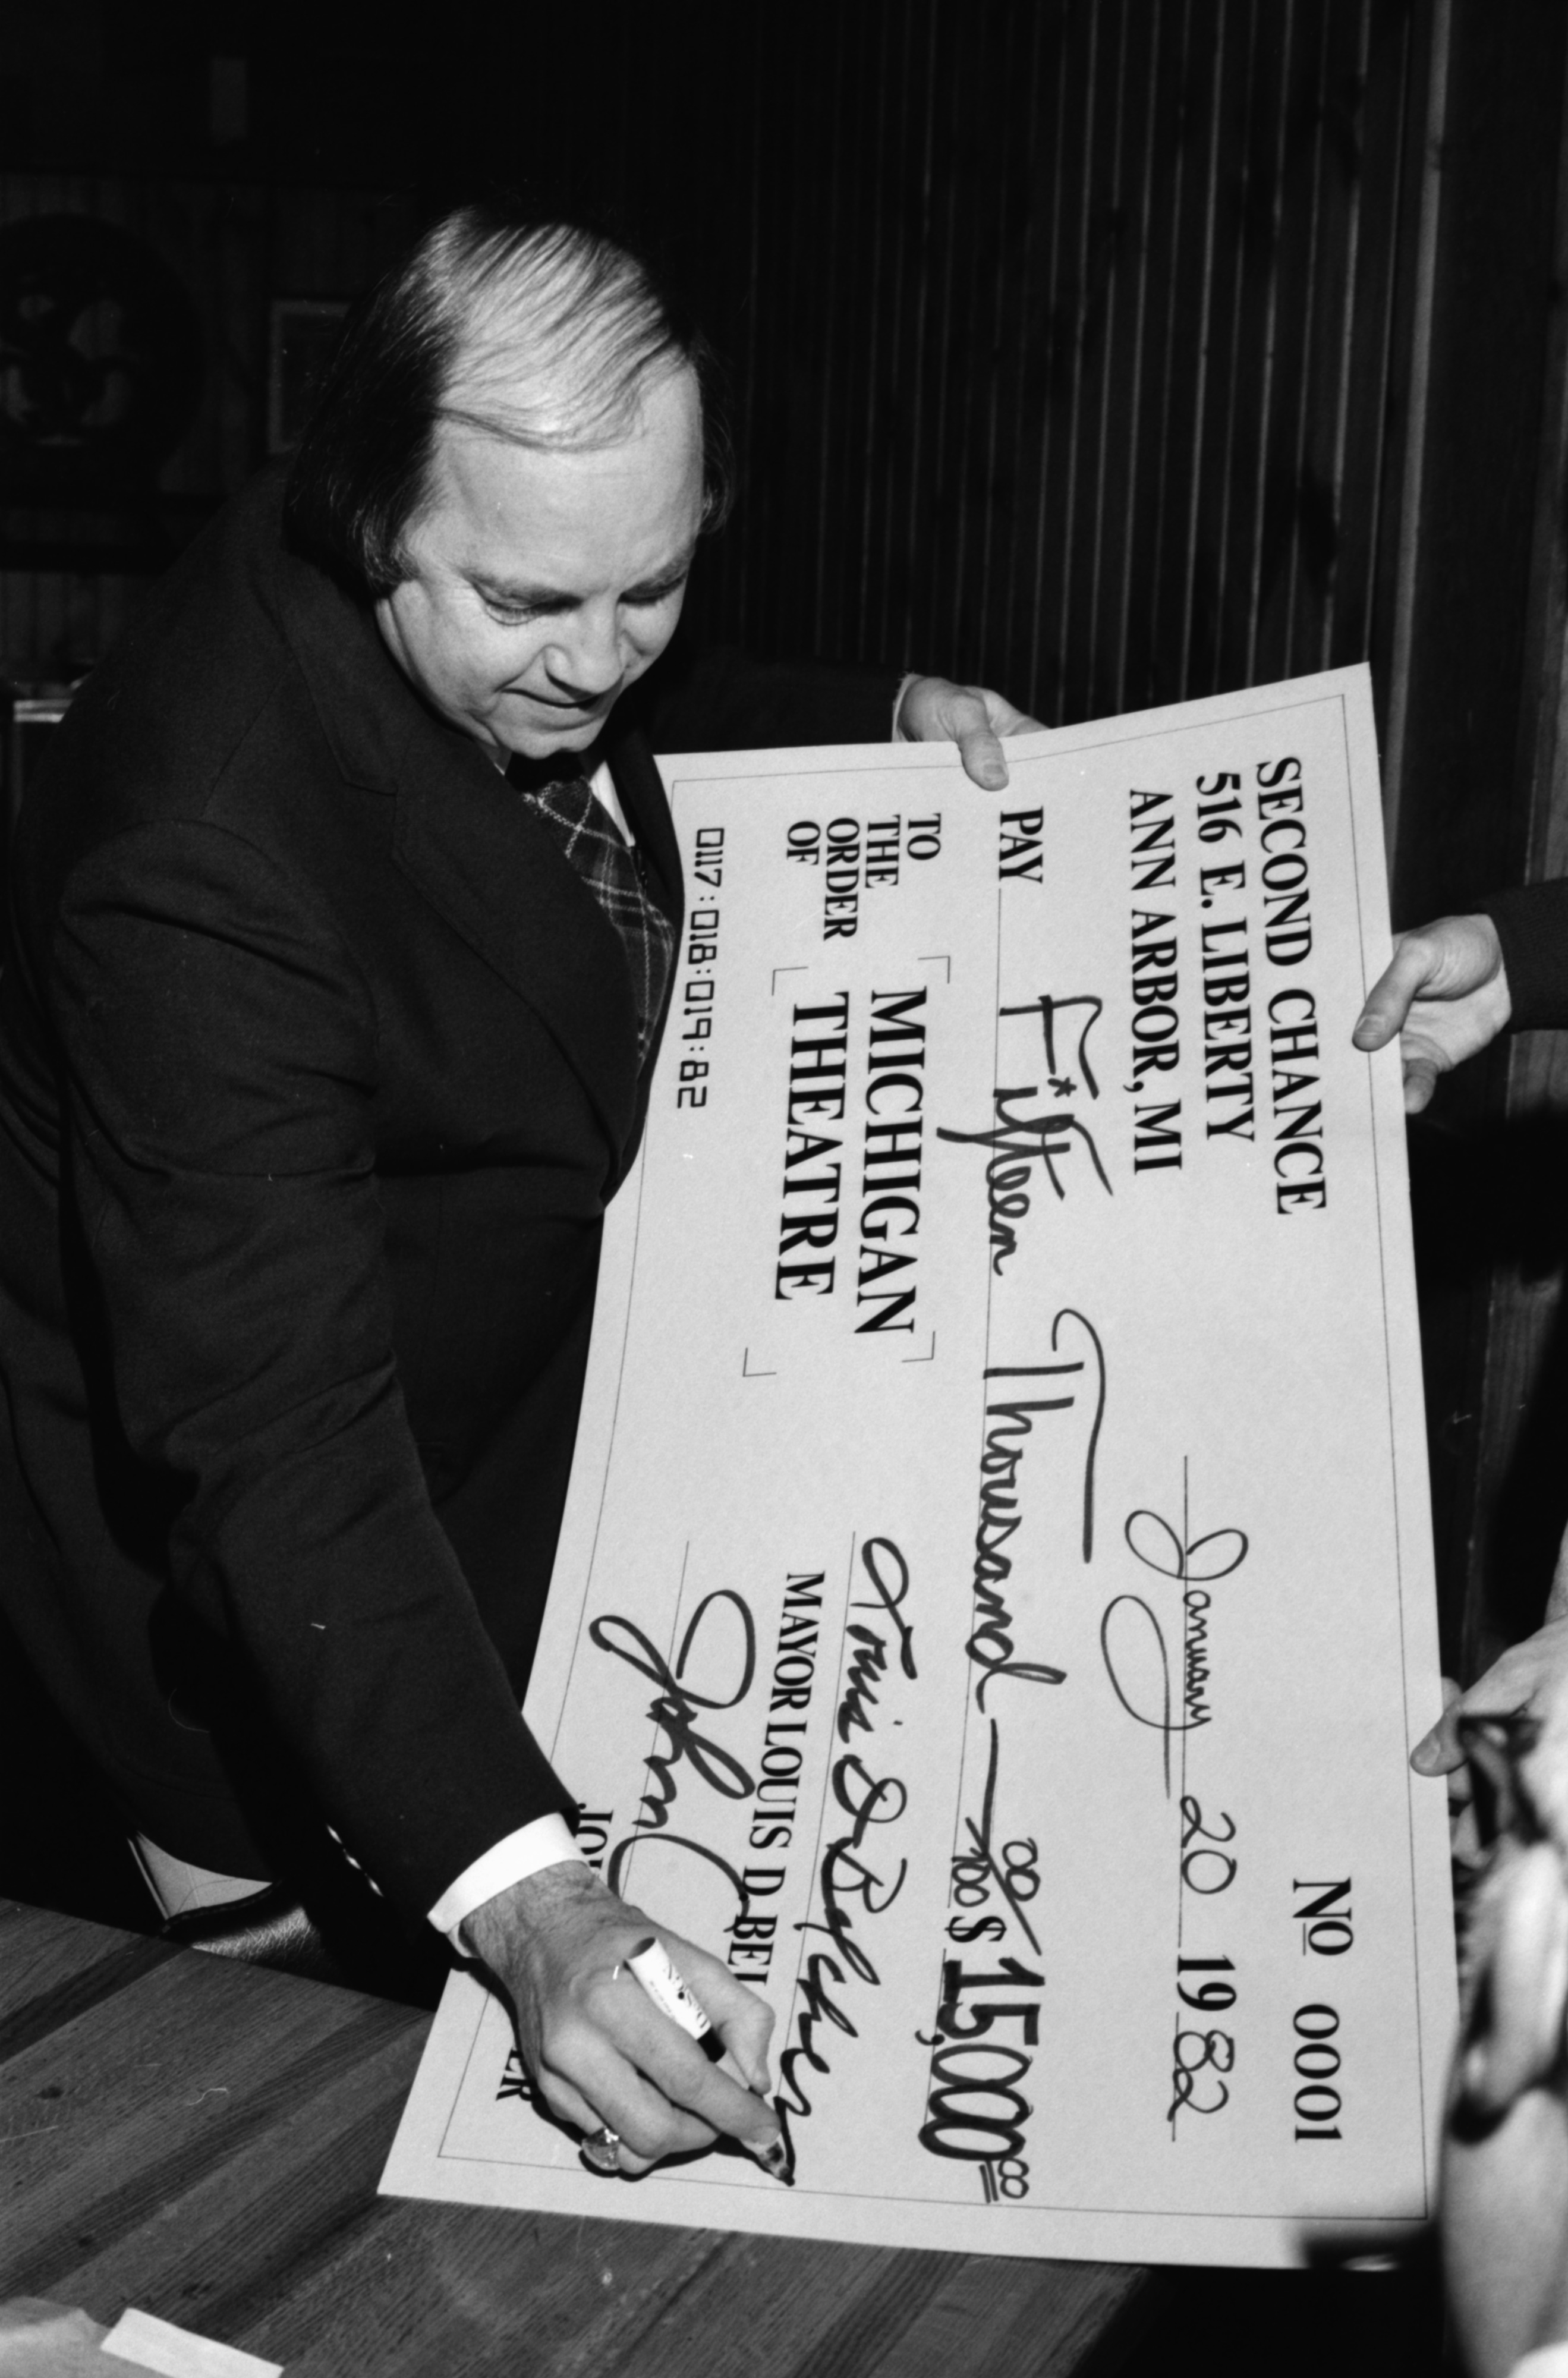 Mayor Louis D. Belcher signs a giant check representing the $15,000 raised during the Las Vegas Millionaire's Party benefit for the Michigan Theatre, January 1982 image